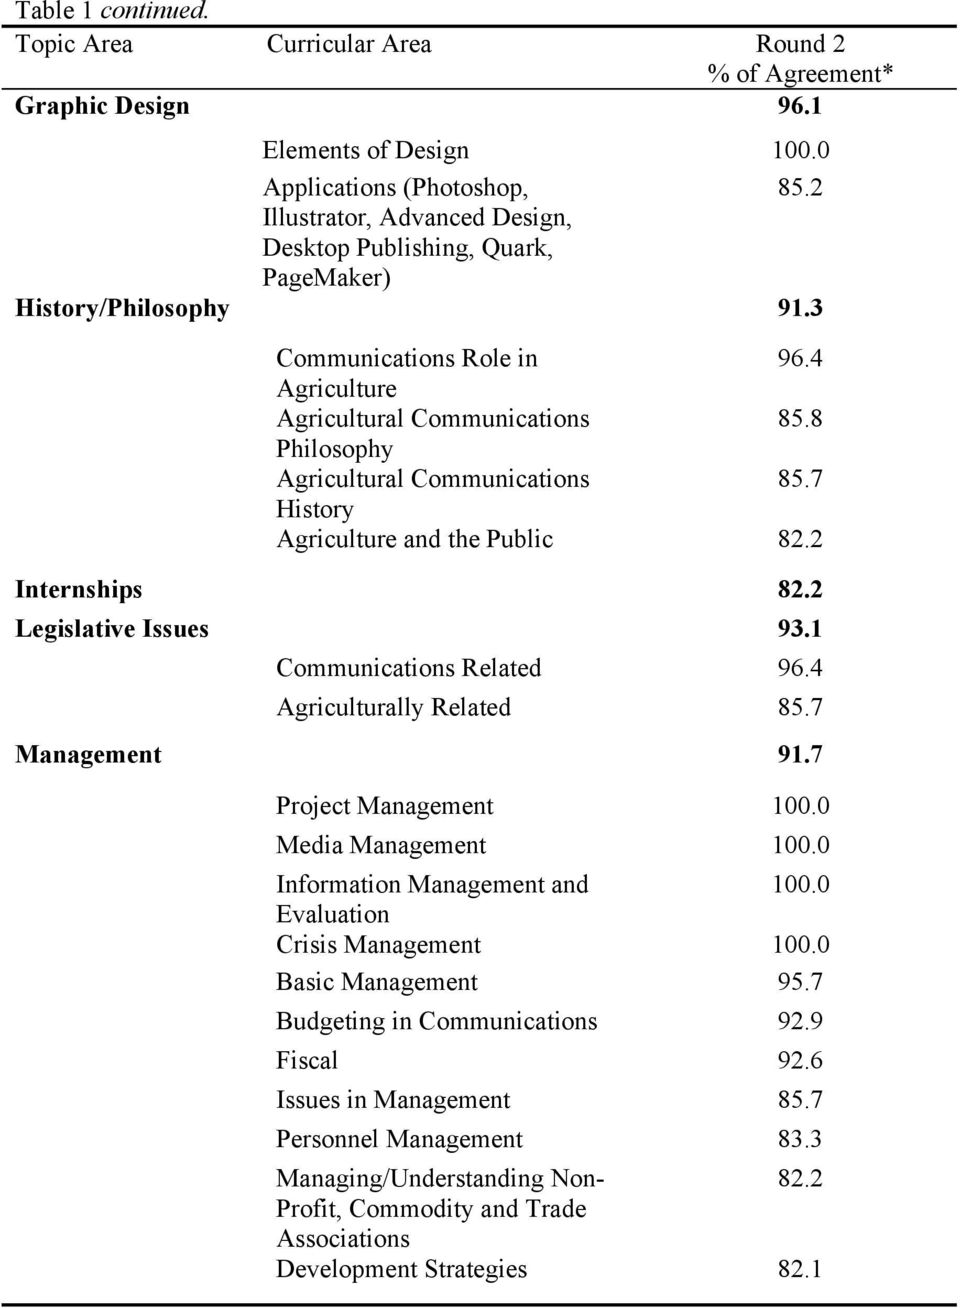 8 Philosophy Agricultural Communications 85.7 History Agriculture and the Public 82.2 Internships 82.2 Legislative Issues 93.1 Communications Related 96.4 Agriculturally Related 85.7 Management 91.